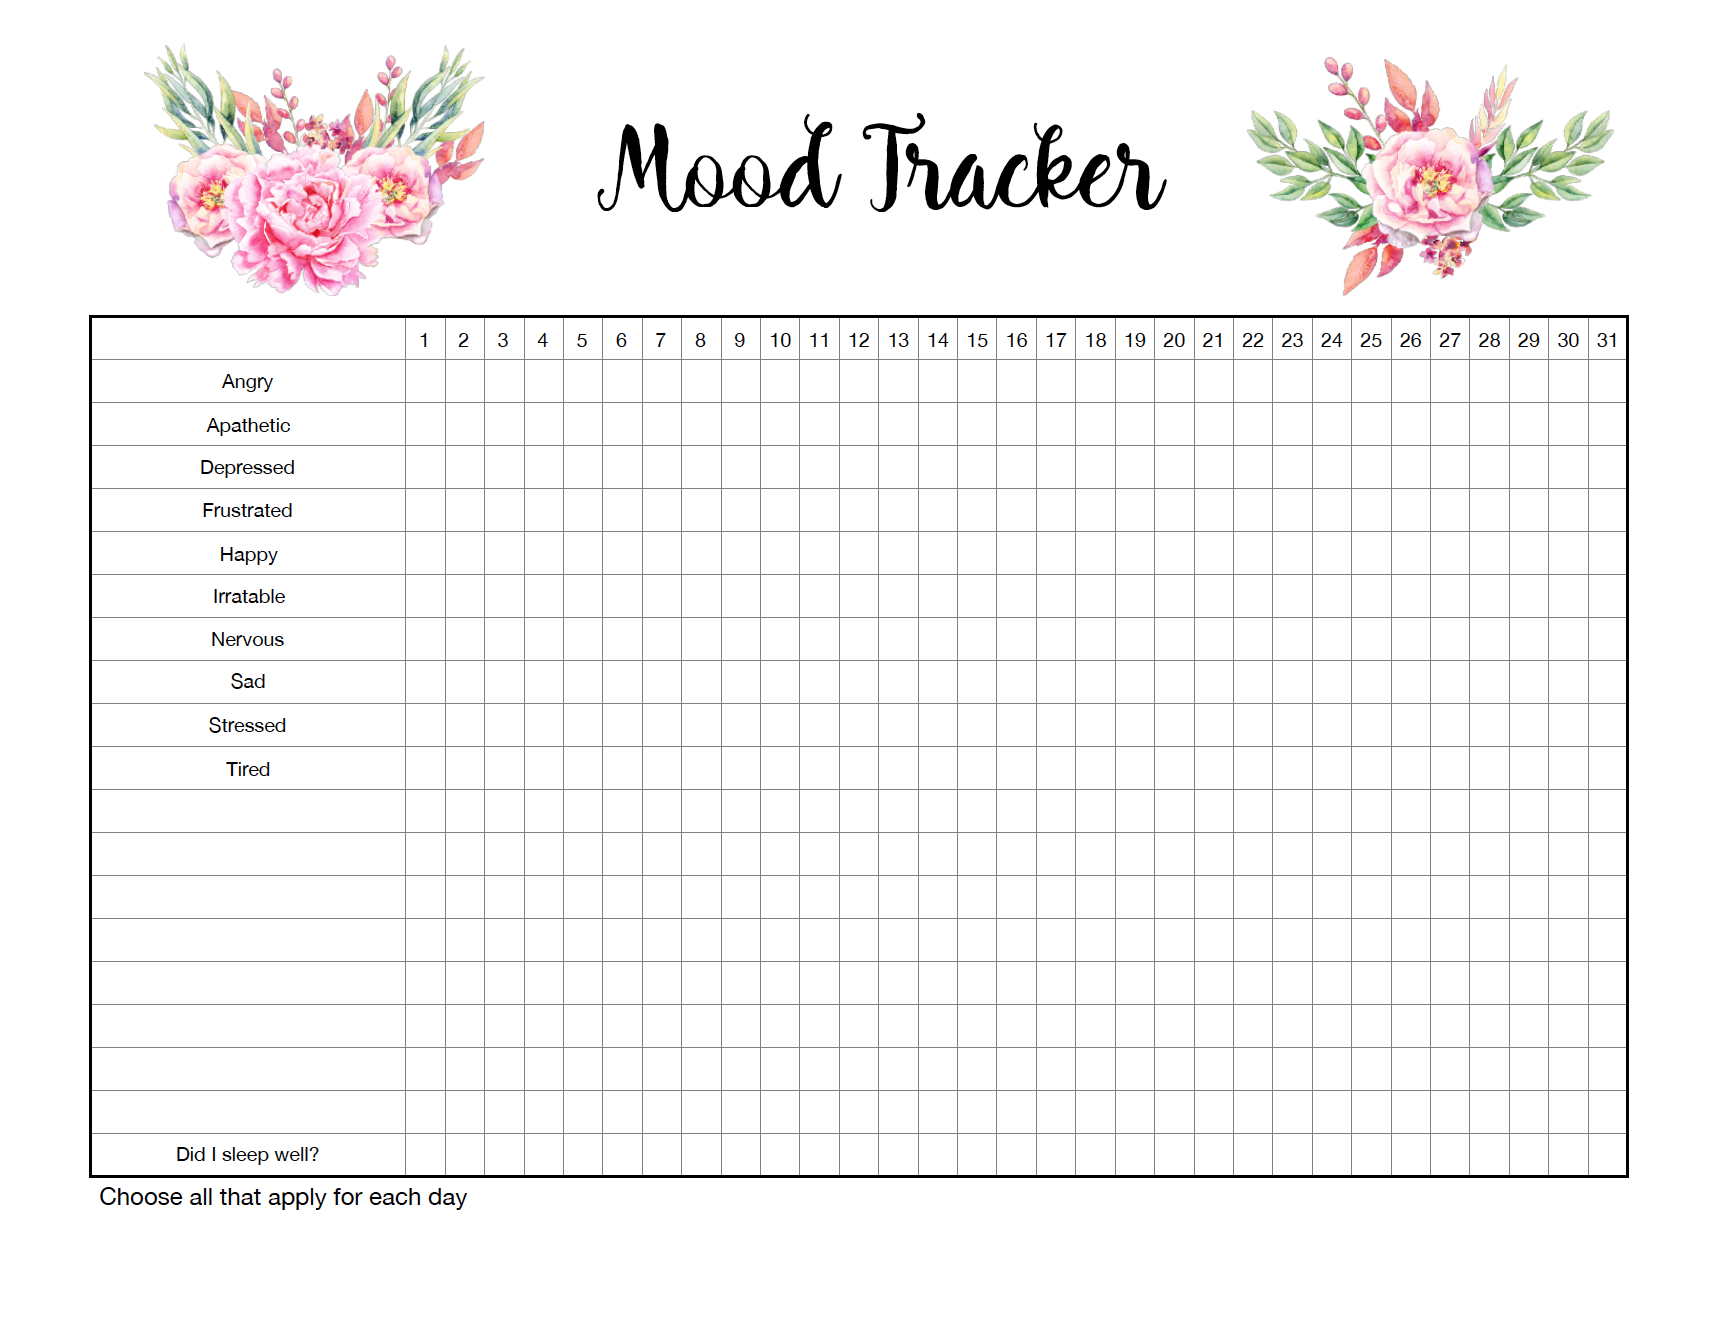 Monthly mood tracker. Track all the emotions you feel during a particular day. Blank spots to add your own.